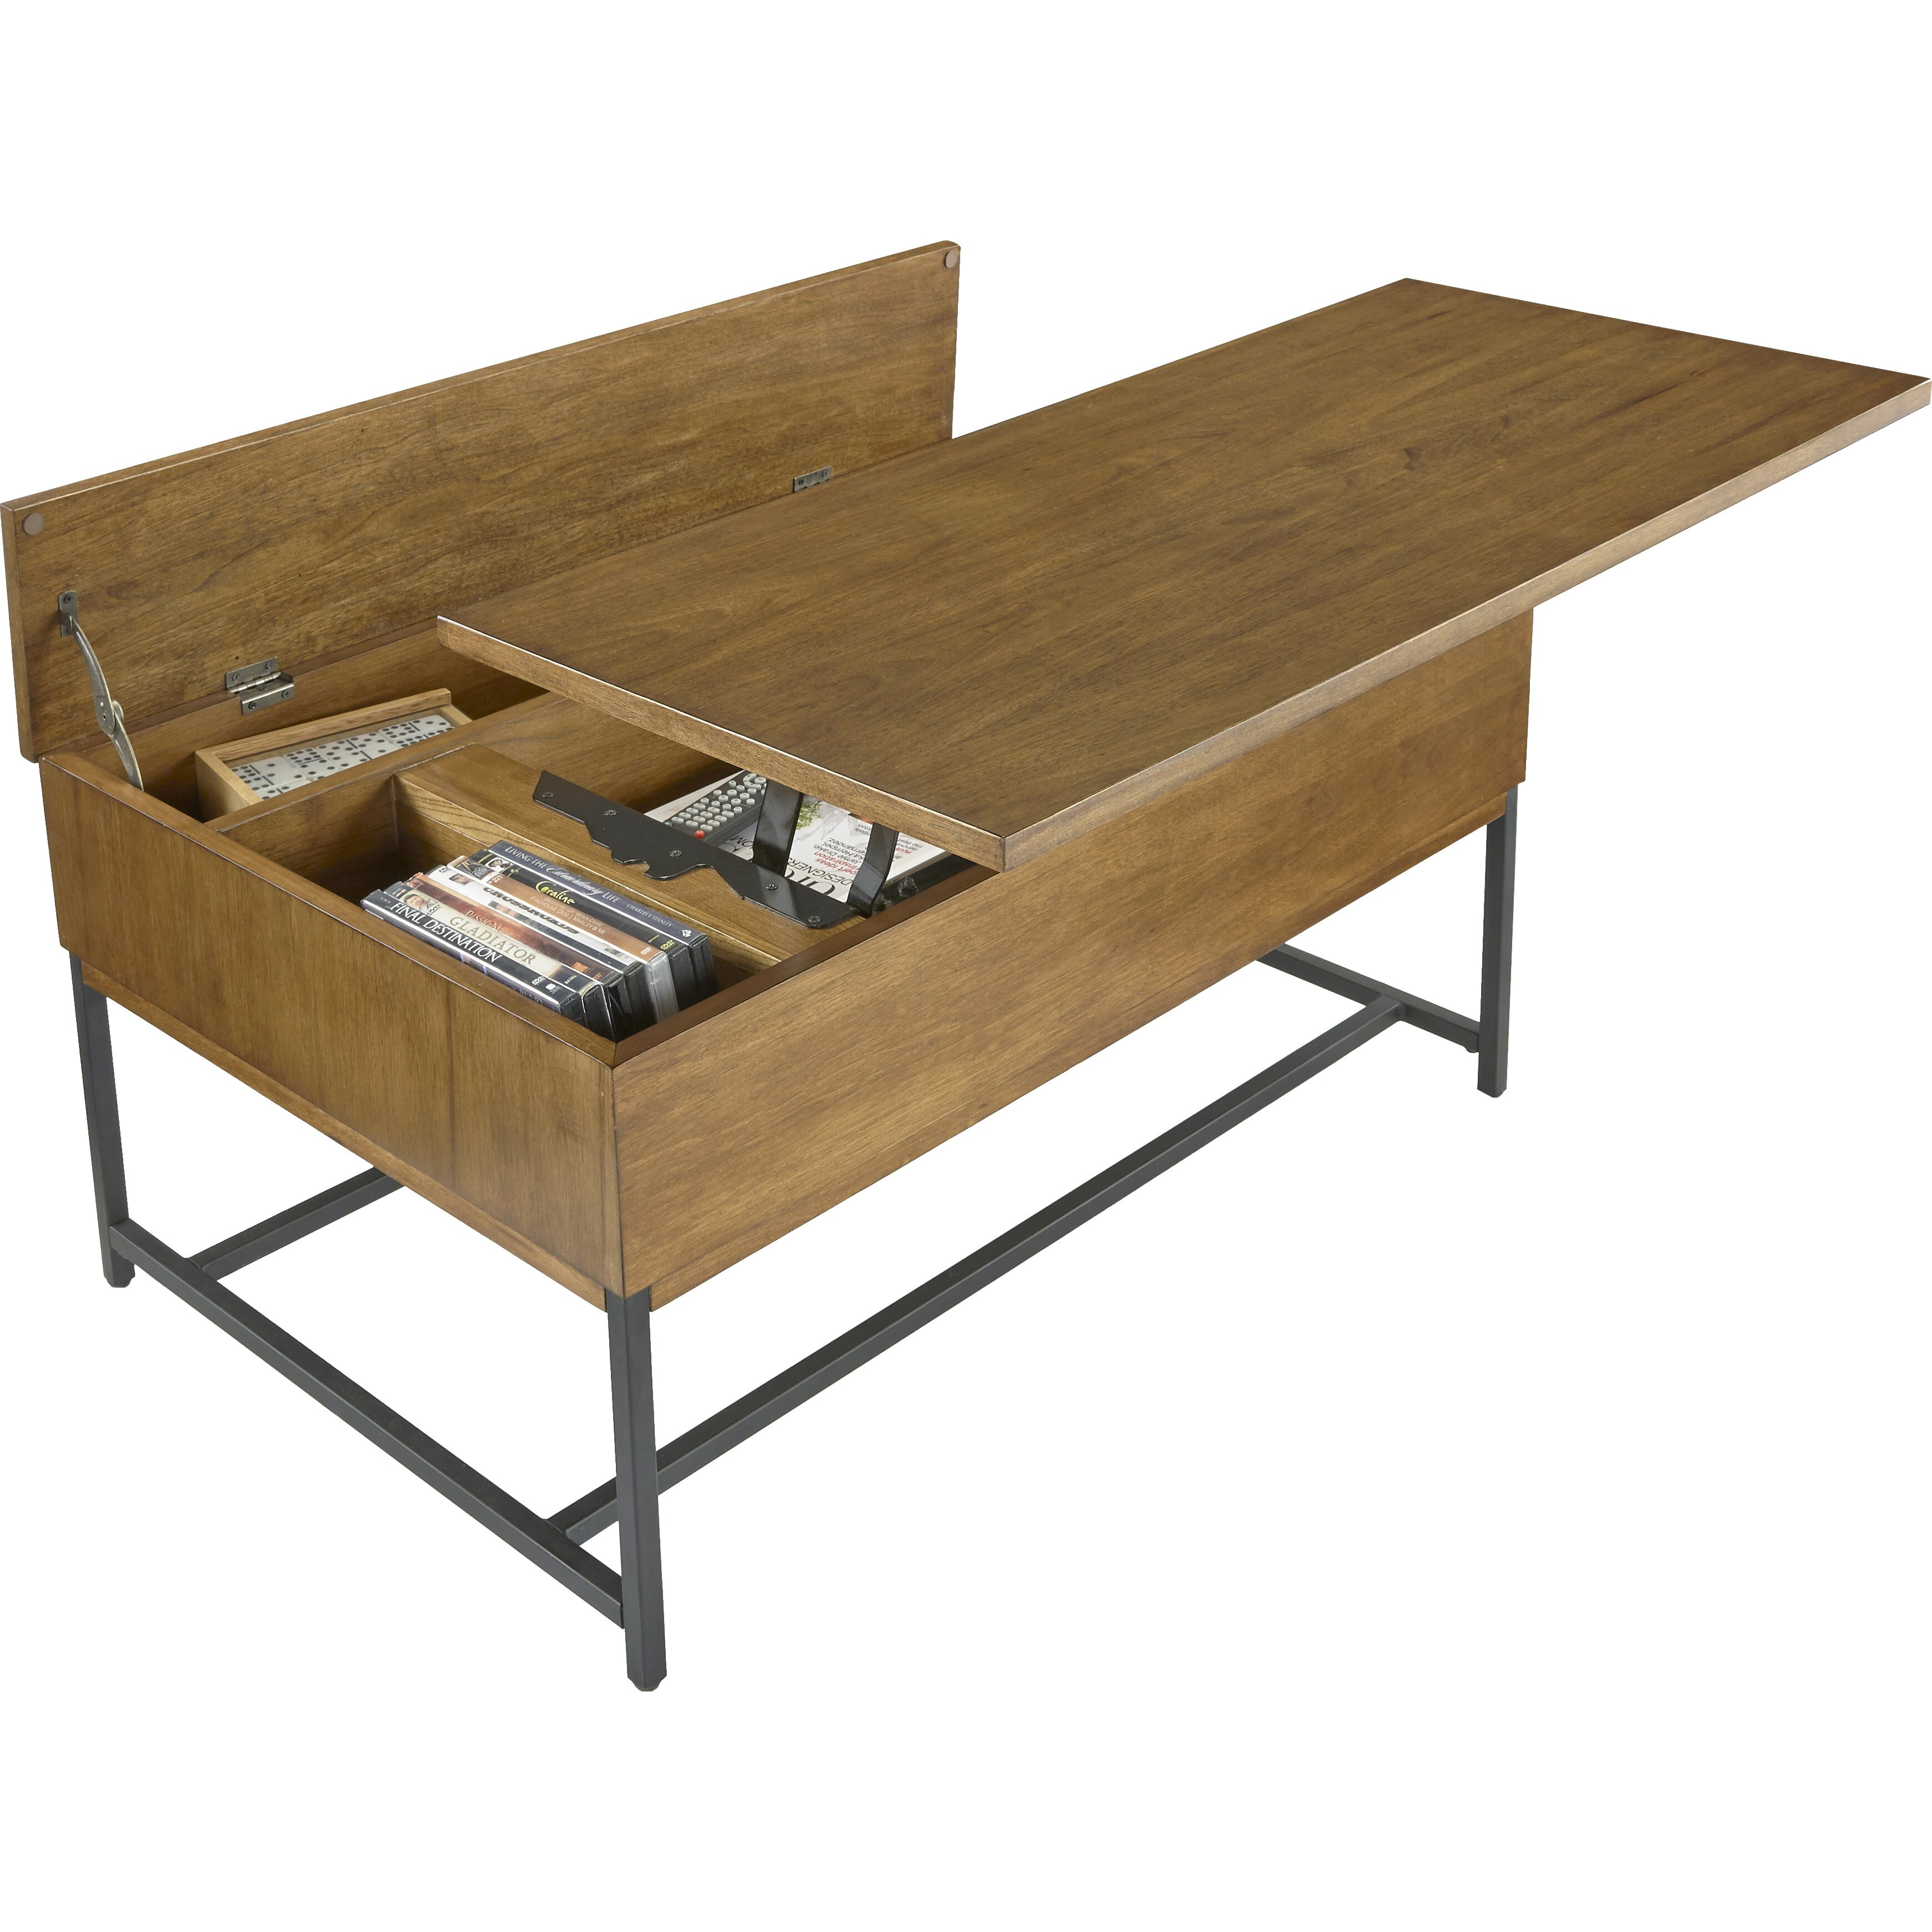 Coffee Table With Adjustable Height Lift Top: Brayden Studio Boyland Coffee Table With Lift Top